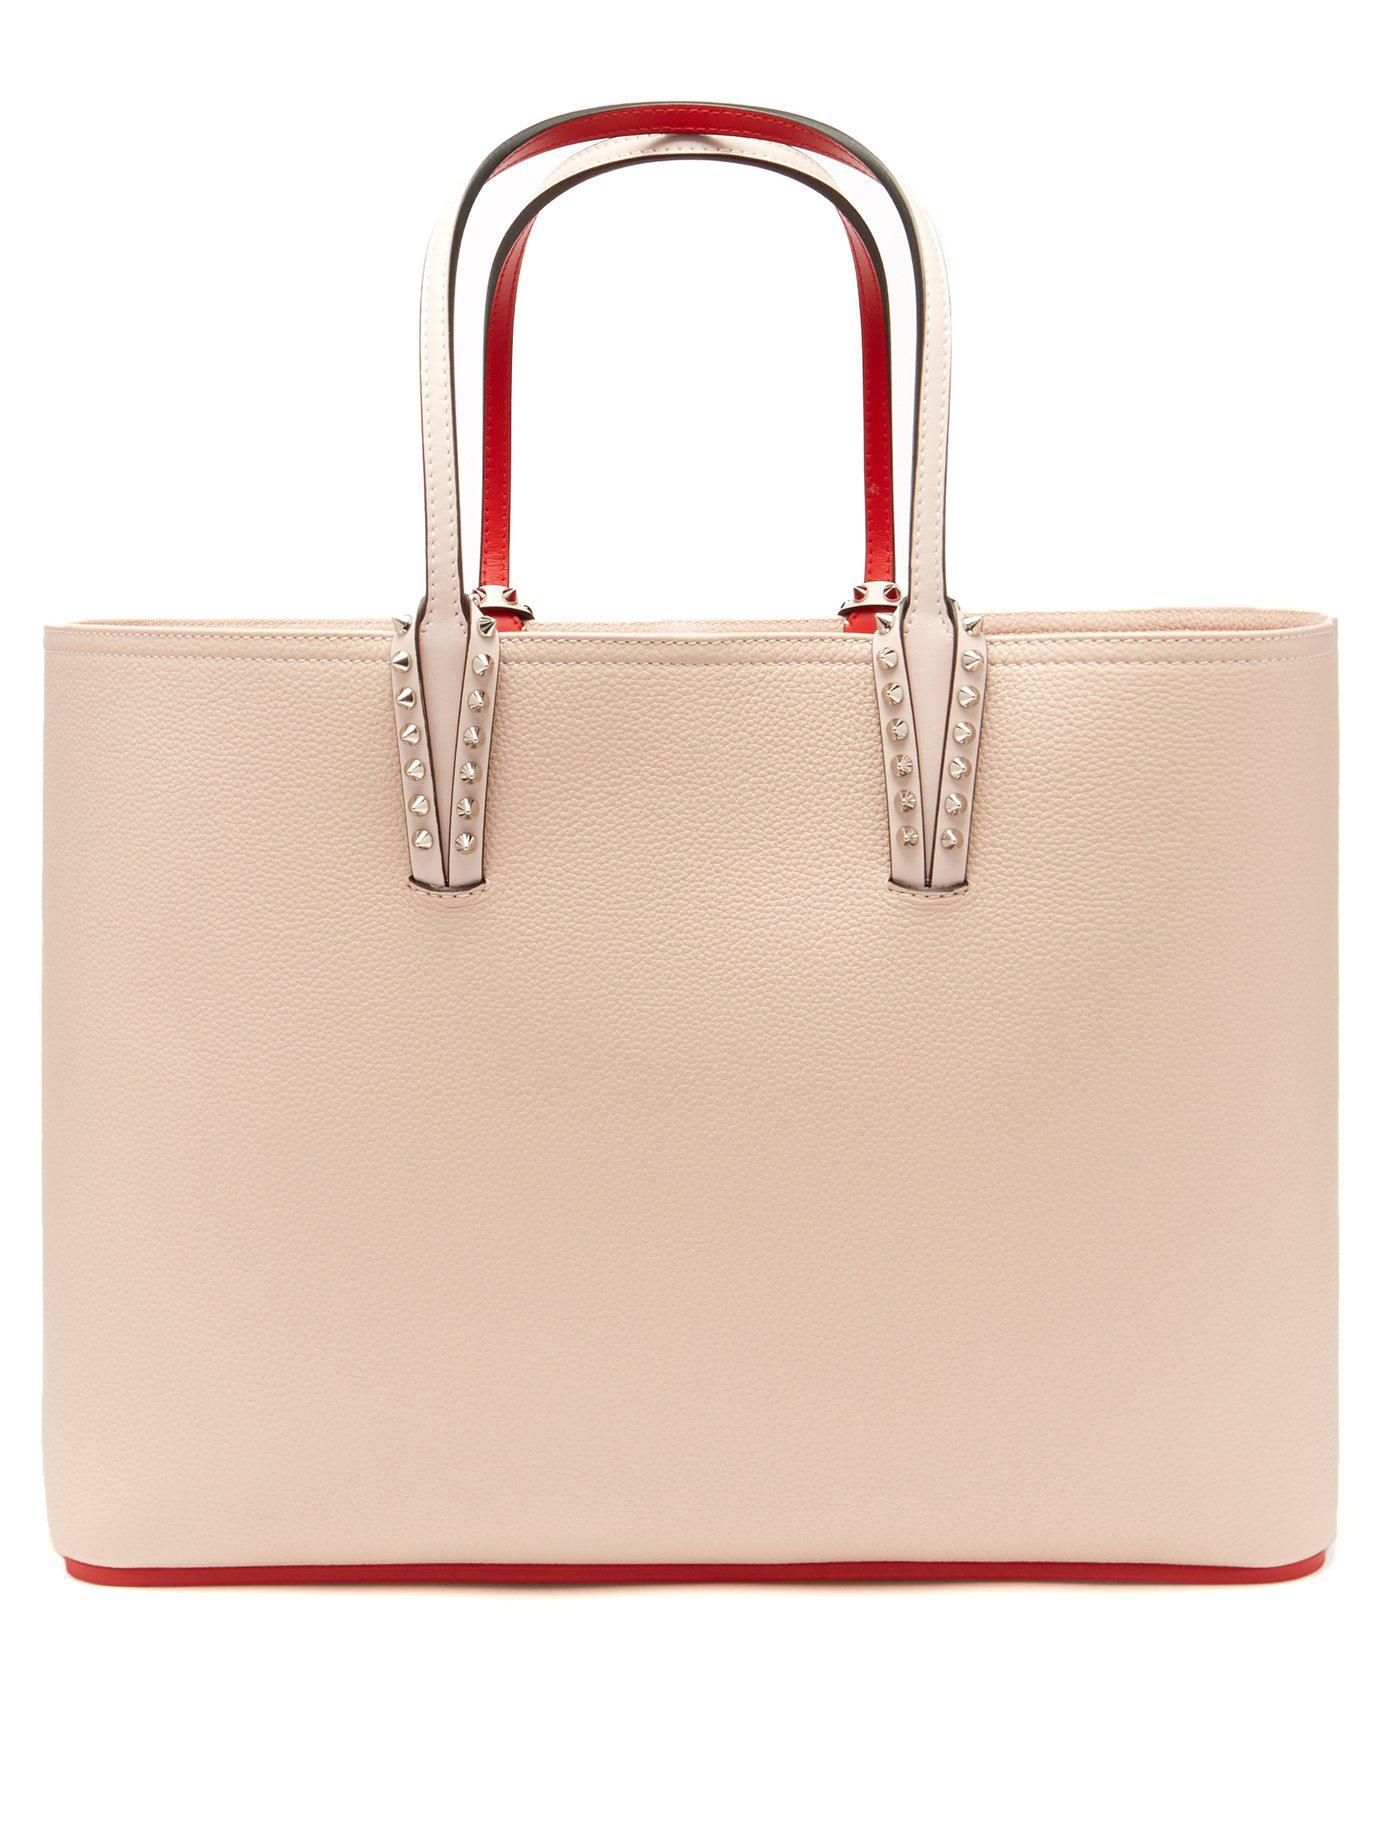 aba697fb1652 Lyst - Christian Louboutin Cabata Grained Leather Tote in Pink